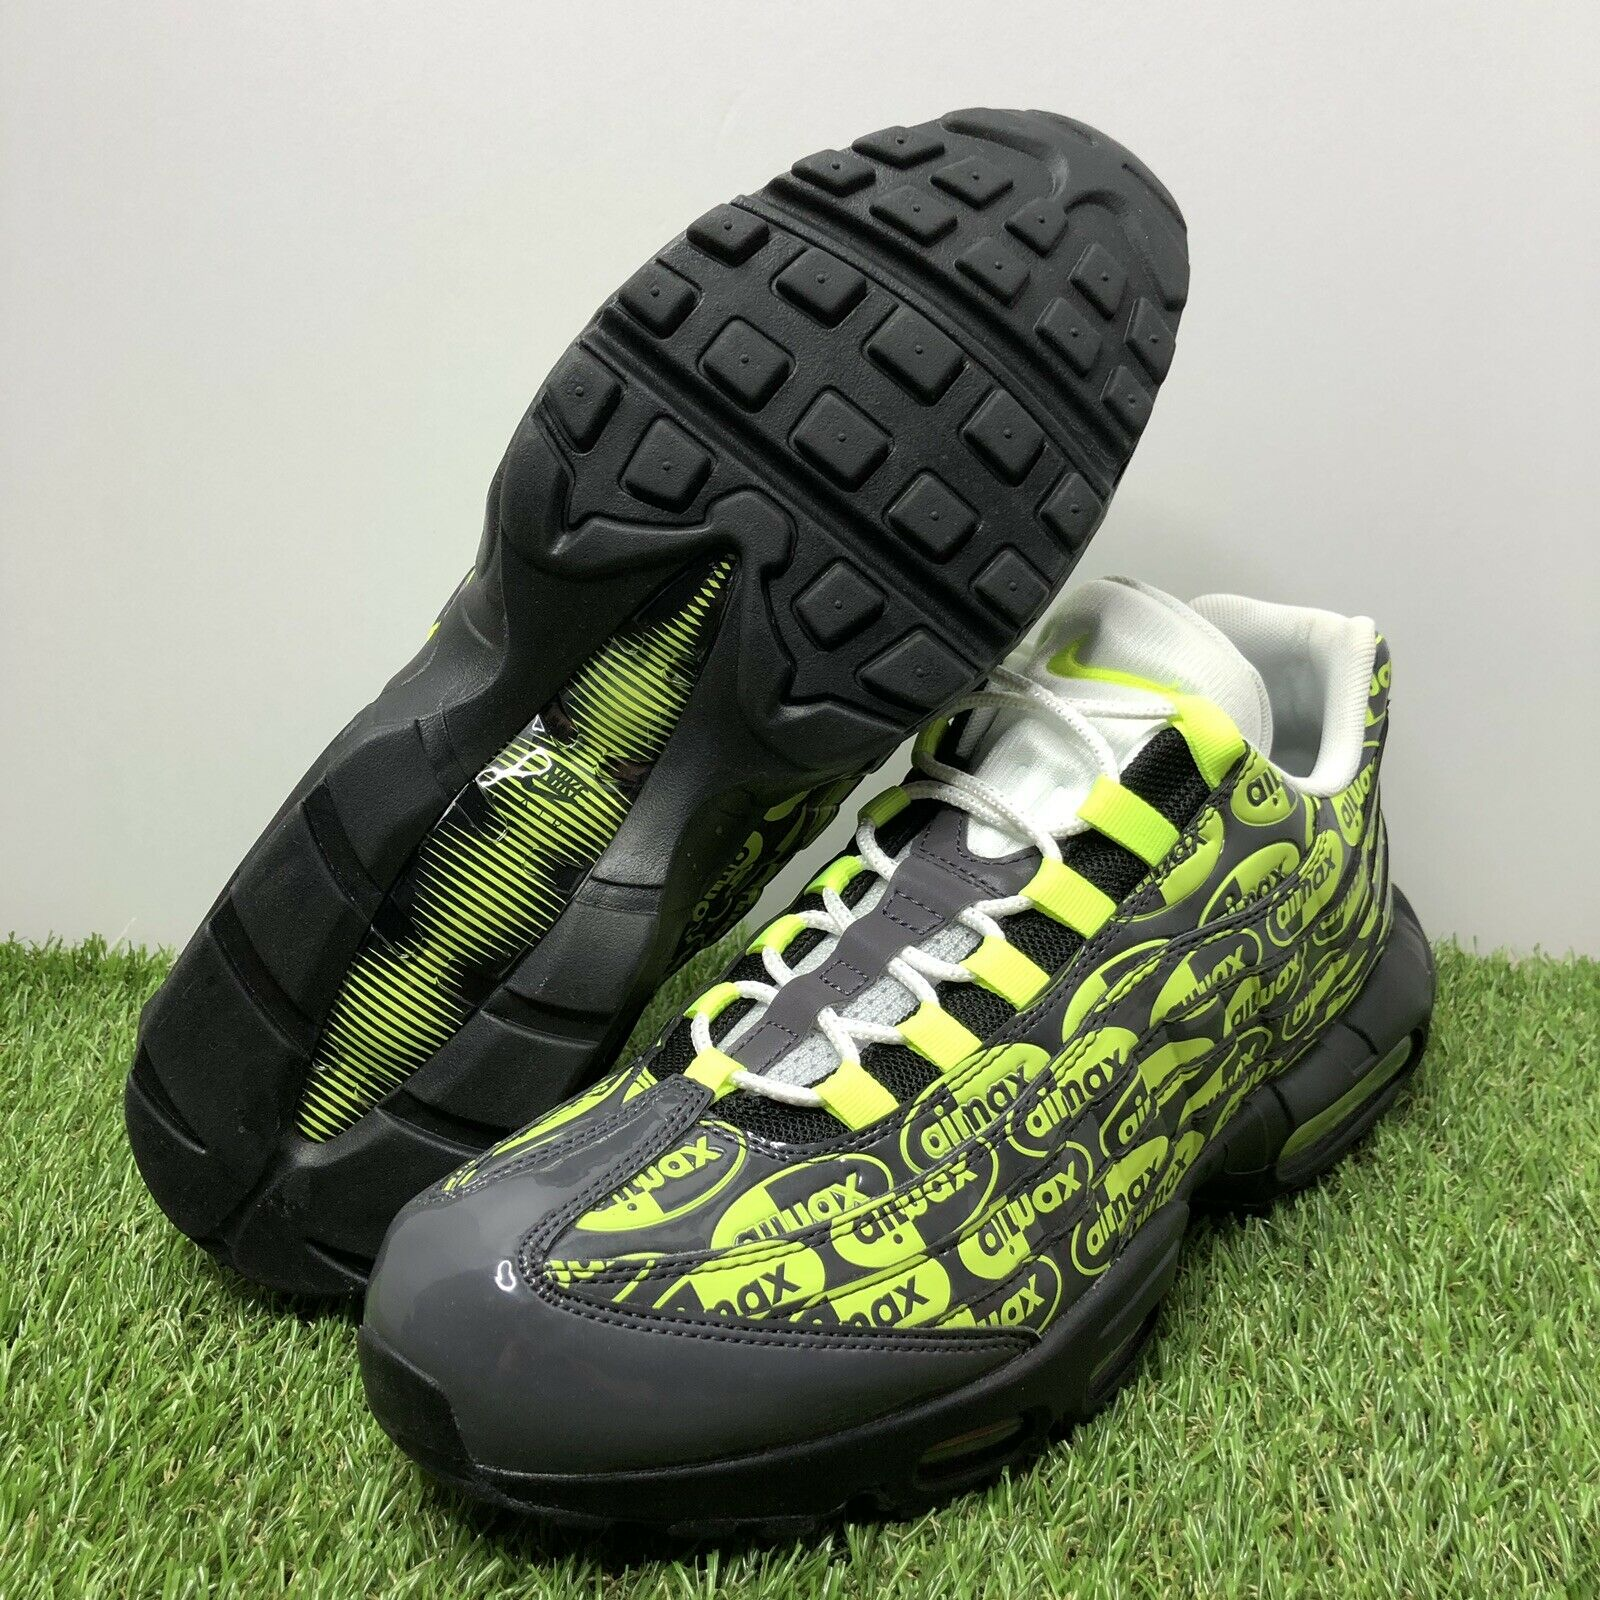 Nike Air Max 95 Premium PRM Running shoes Black Volt White Size 12.5 538416-019